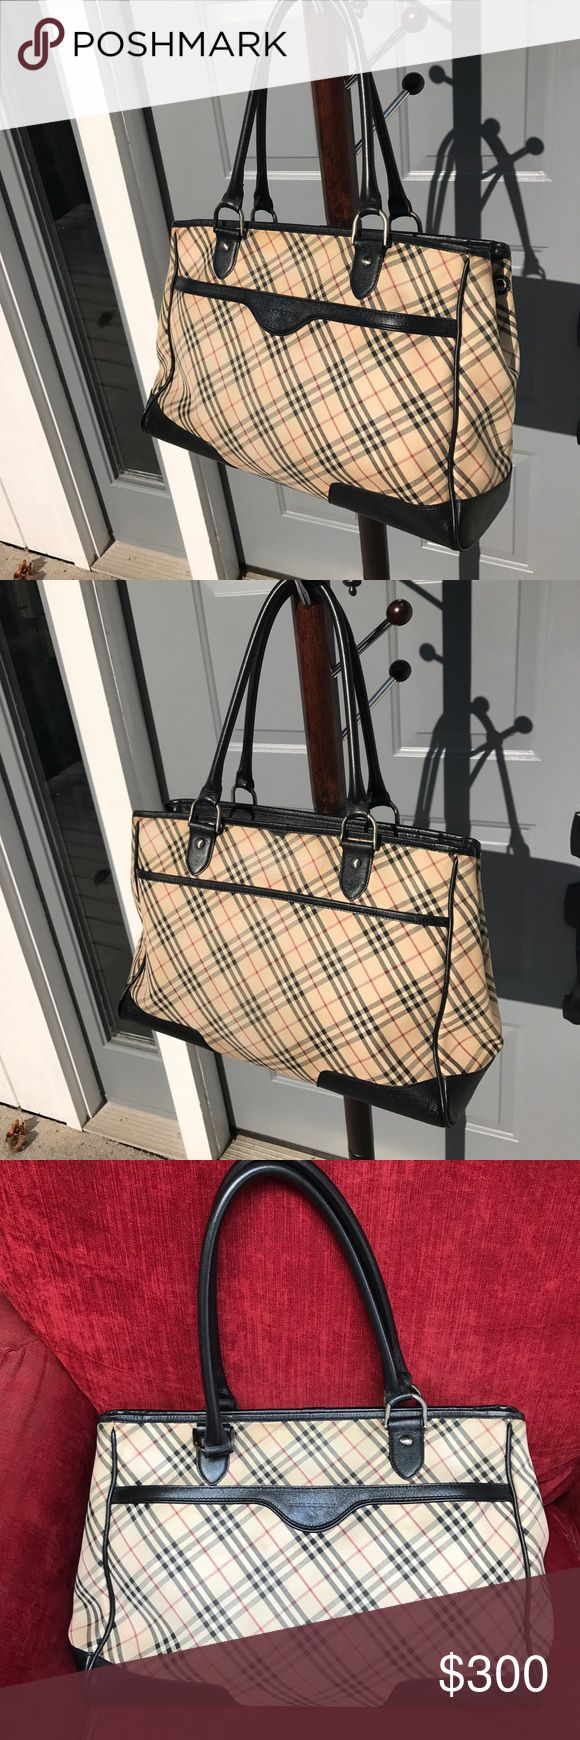 Burberry Tote Bag This is my oldest burberry bag. It has some sign of wear but still in good condition. Make reasonable offer Burberry Bags Totes